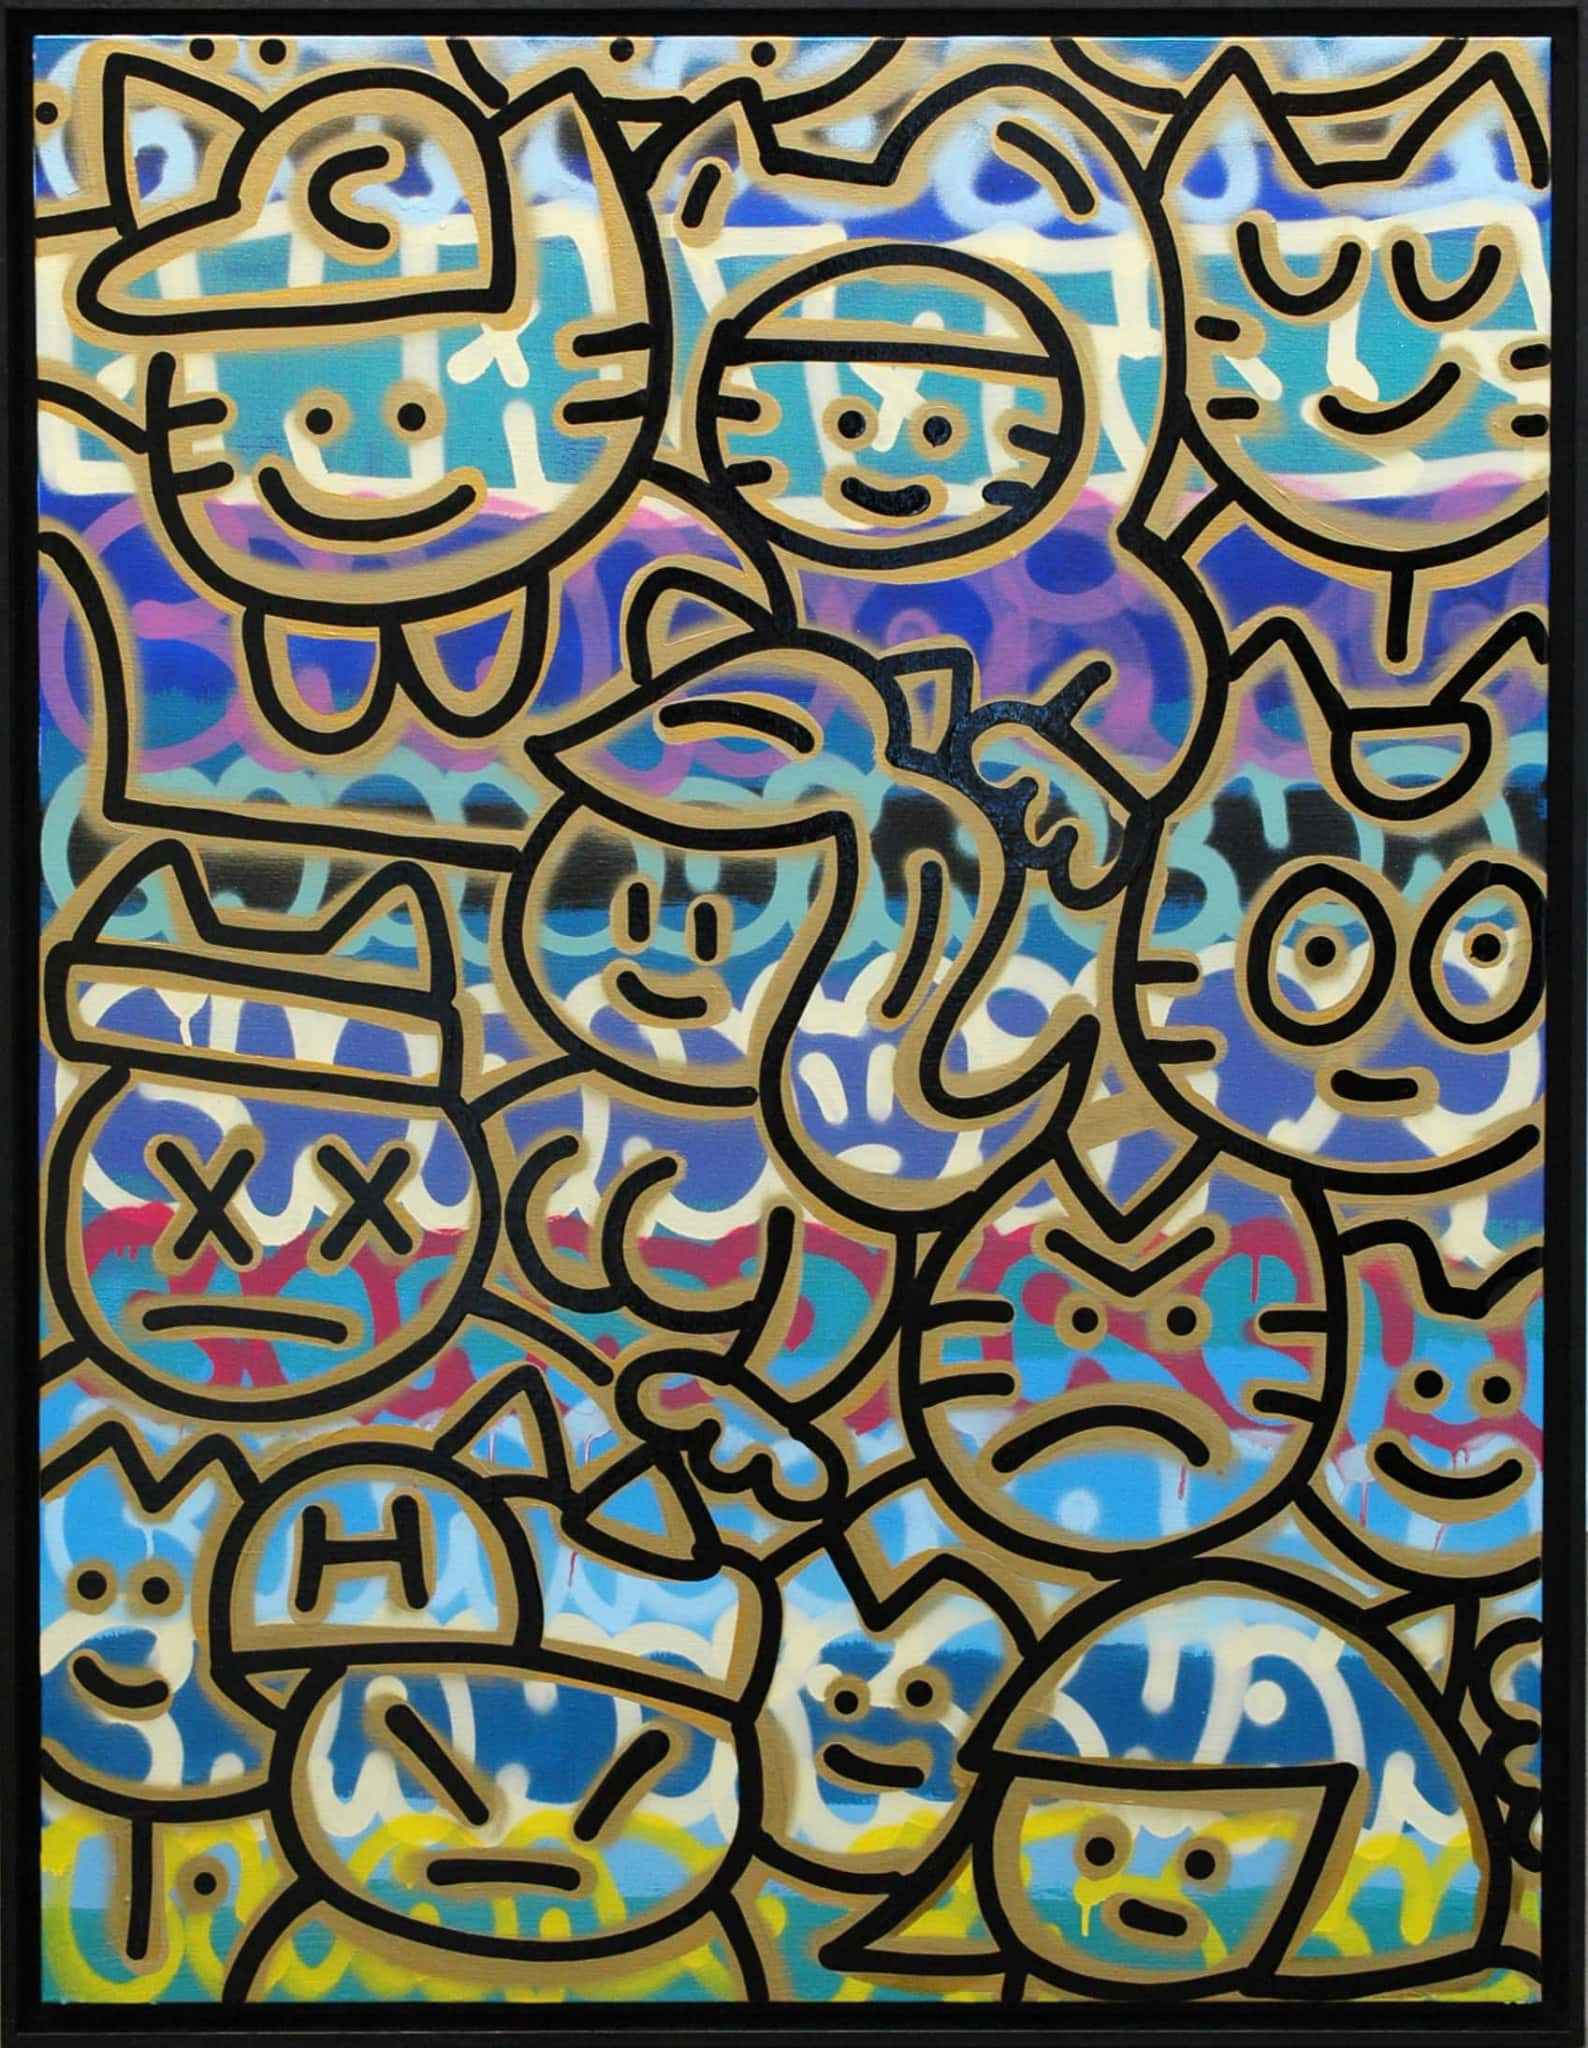 Galerie Art Jingle CHANOIR Chas Avec Un Coeur En Or 116x89 cm 2020-min